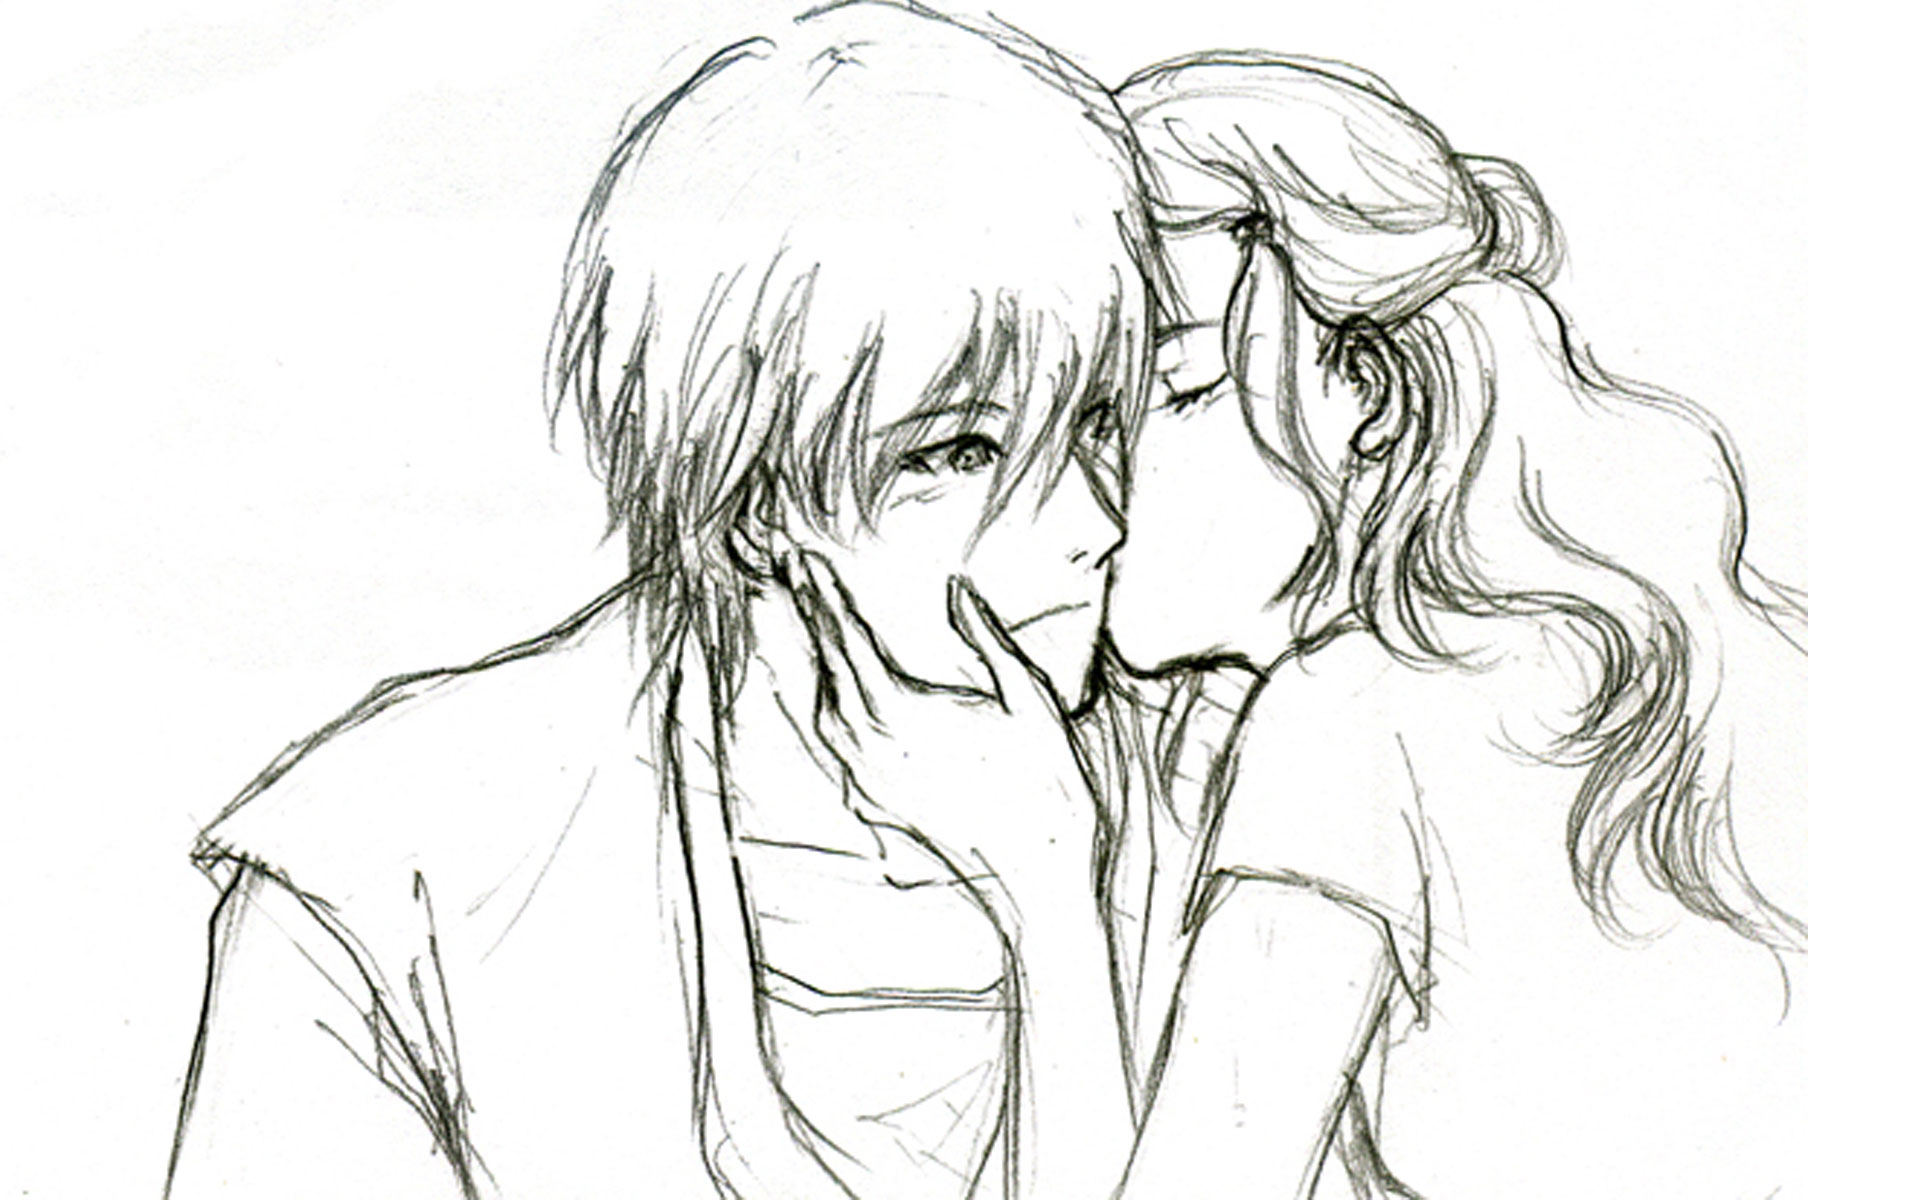 1920x1200 Pencil Sketch Hug With Love Love Hug Kiss Romantic Pencil Animated